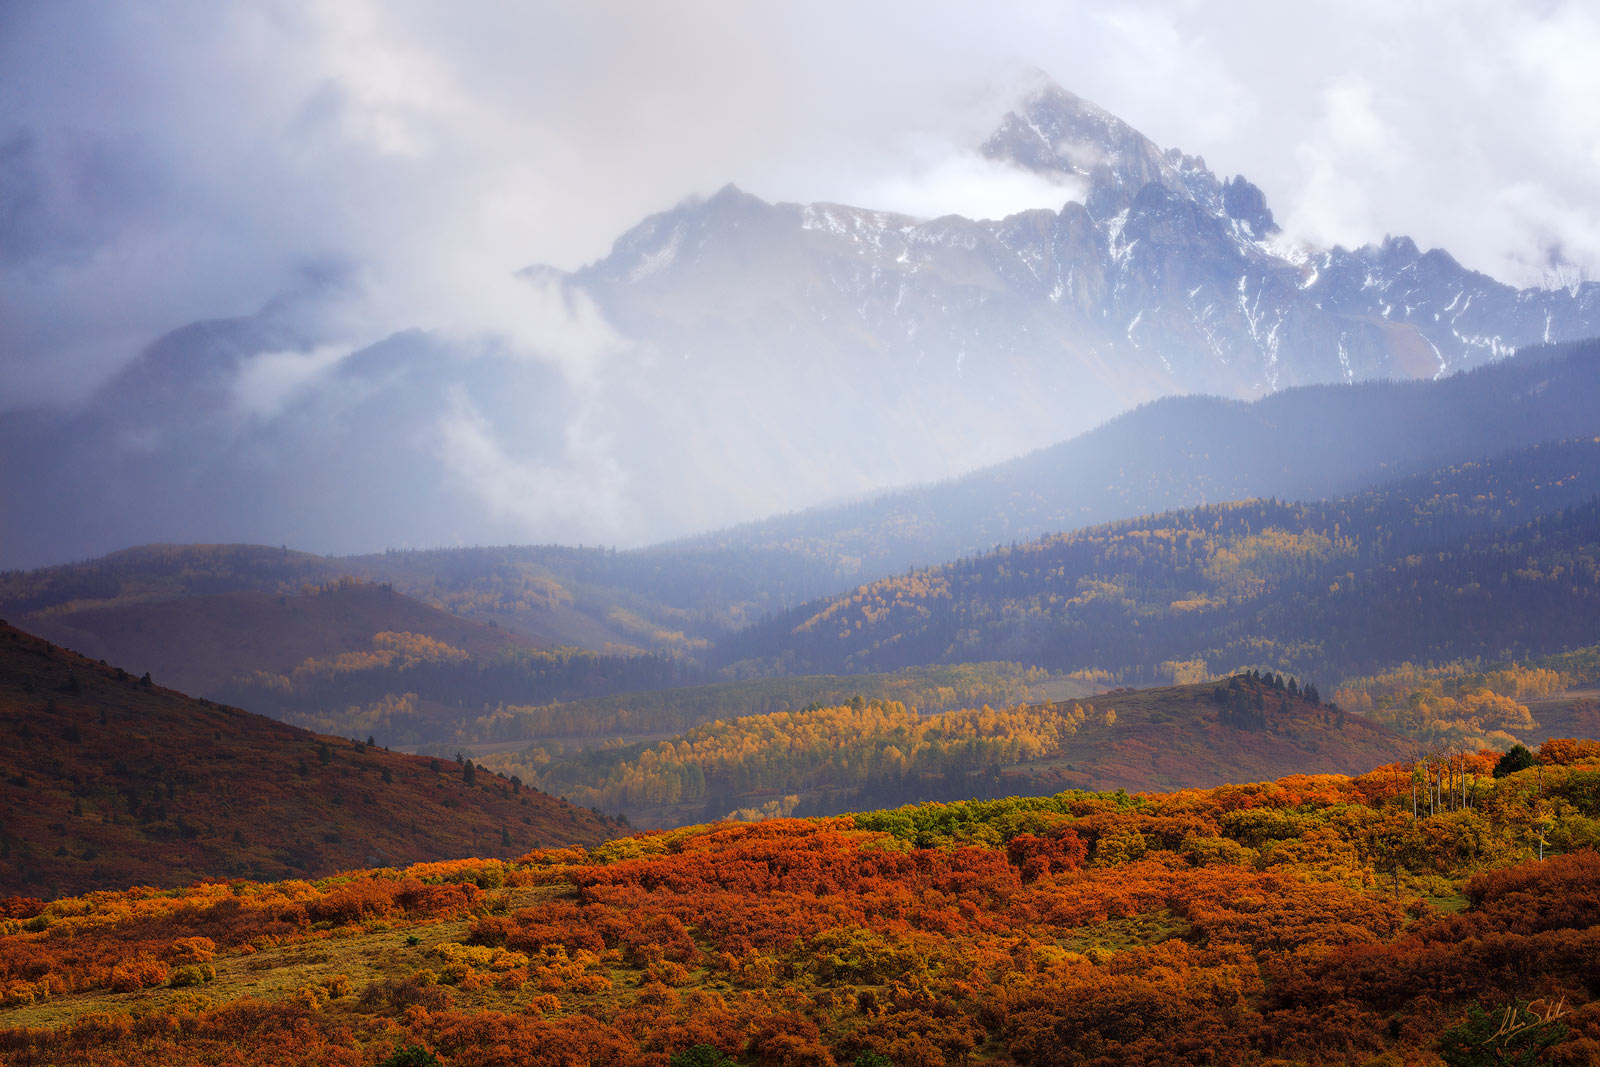 Mount Sneffels rises through the mist of a clearing storm. San Juan Mountains of Colorado near Telluride and Ouray. Photo ©...